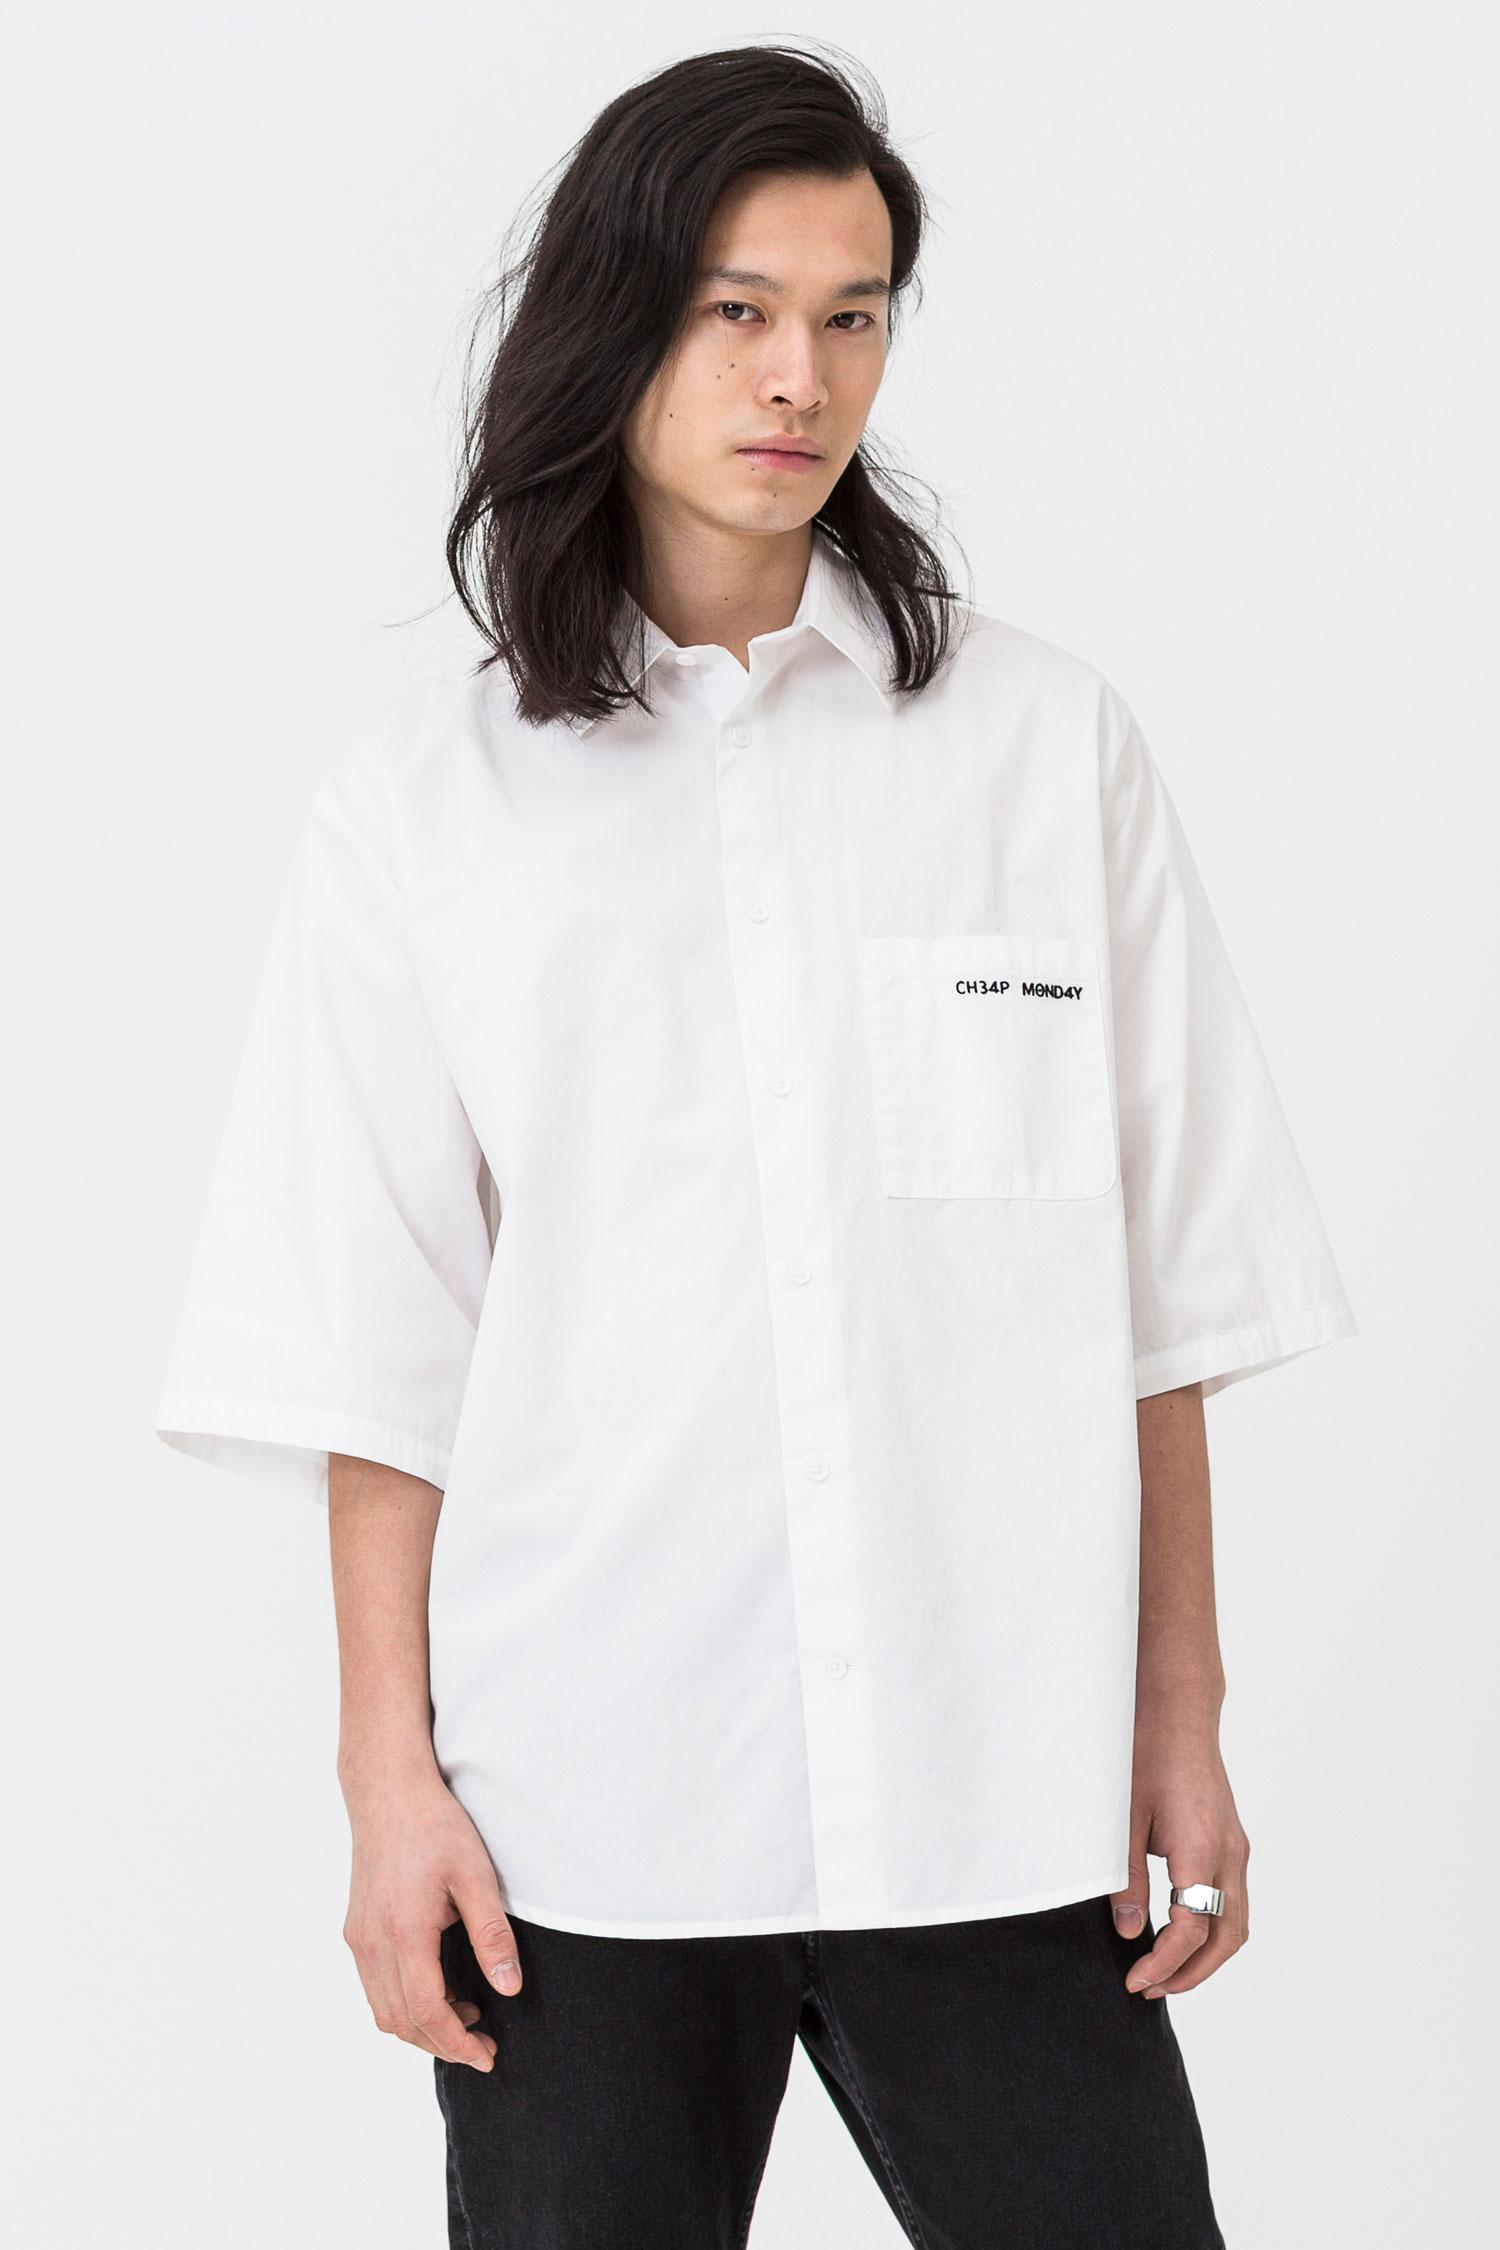 cea9cd3c51 Cheap Monday Fuse Security Logo Shirt in White for Men - Lyst